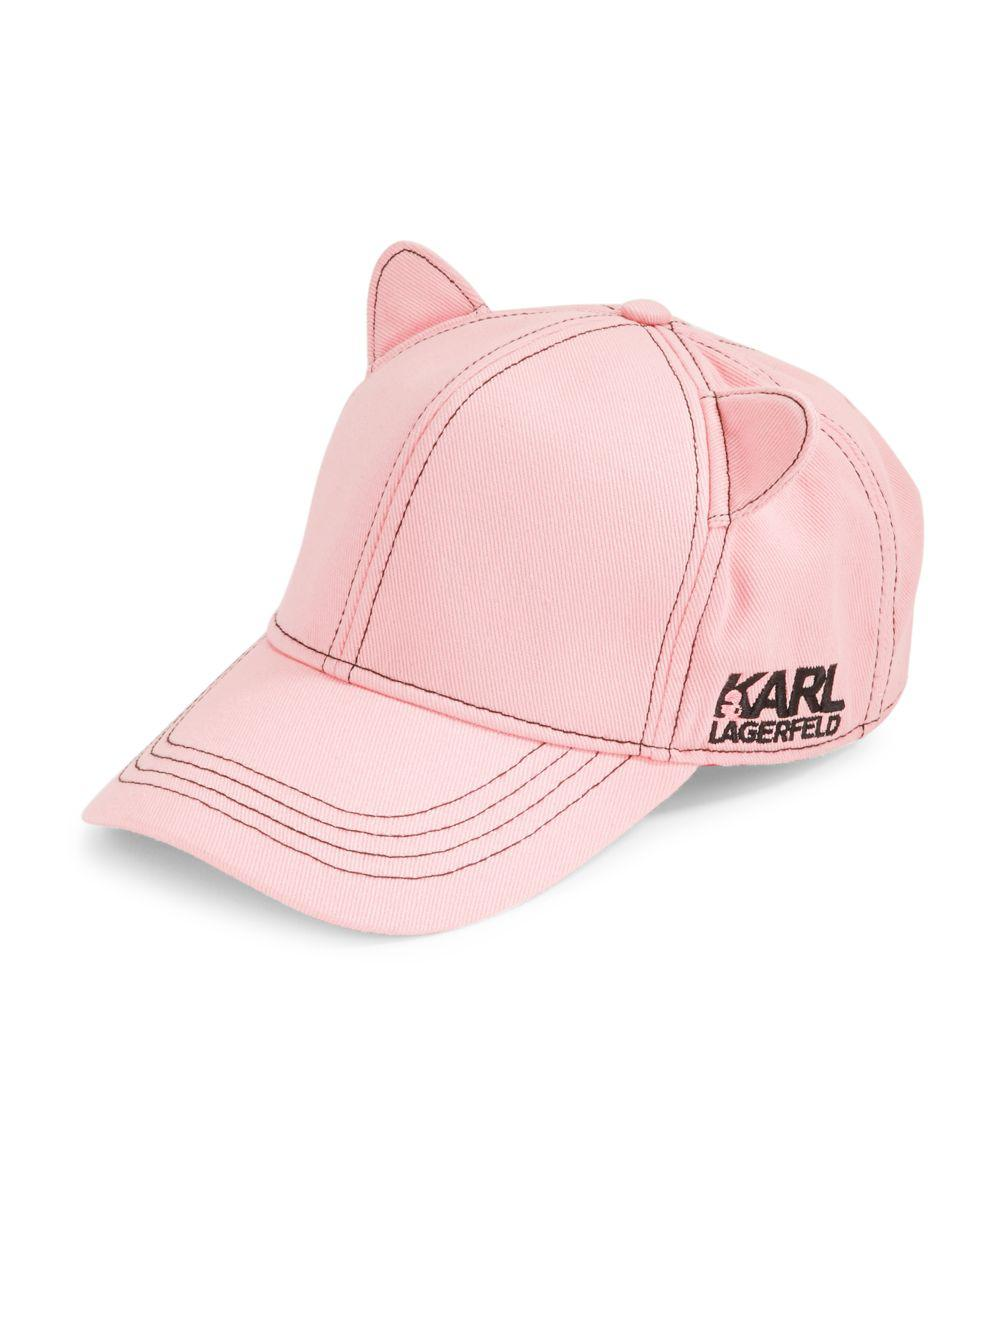 5b9b70f95fd Lyst - Karl Lagerfeld Cat Ears Baseball Hat in Pink